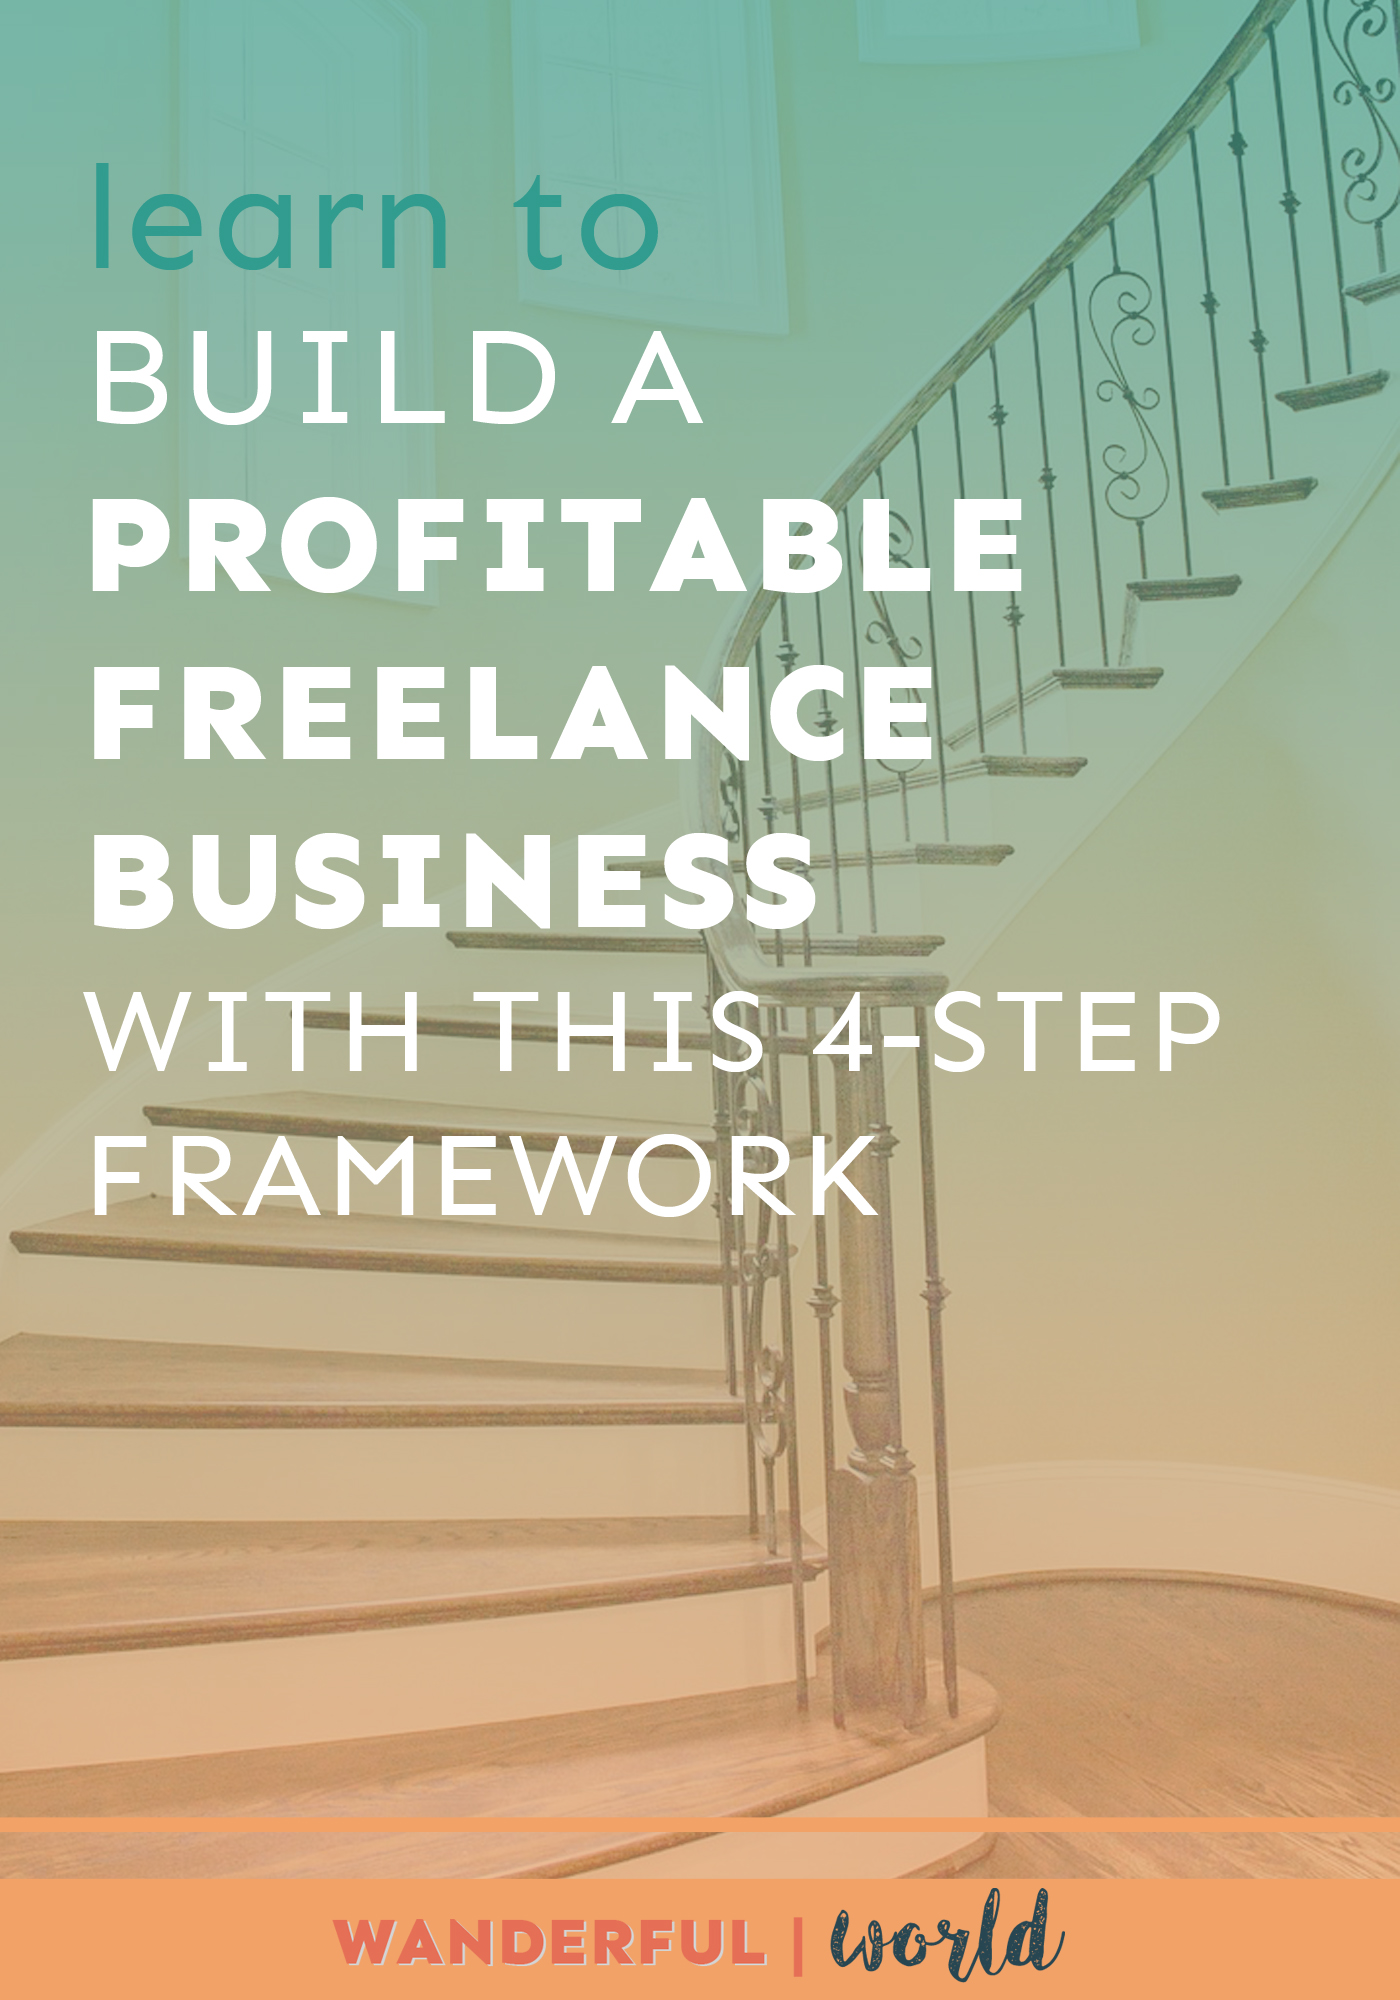 Ready to build a profitable freelance business? Here's the 4-step framework you need.